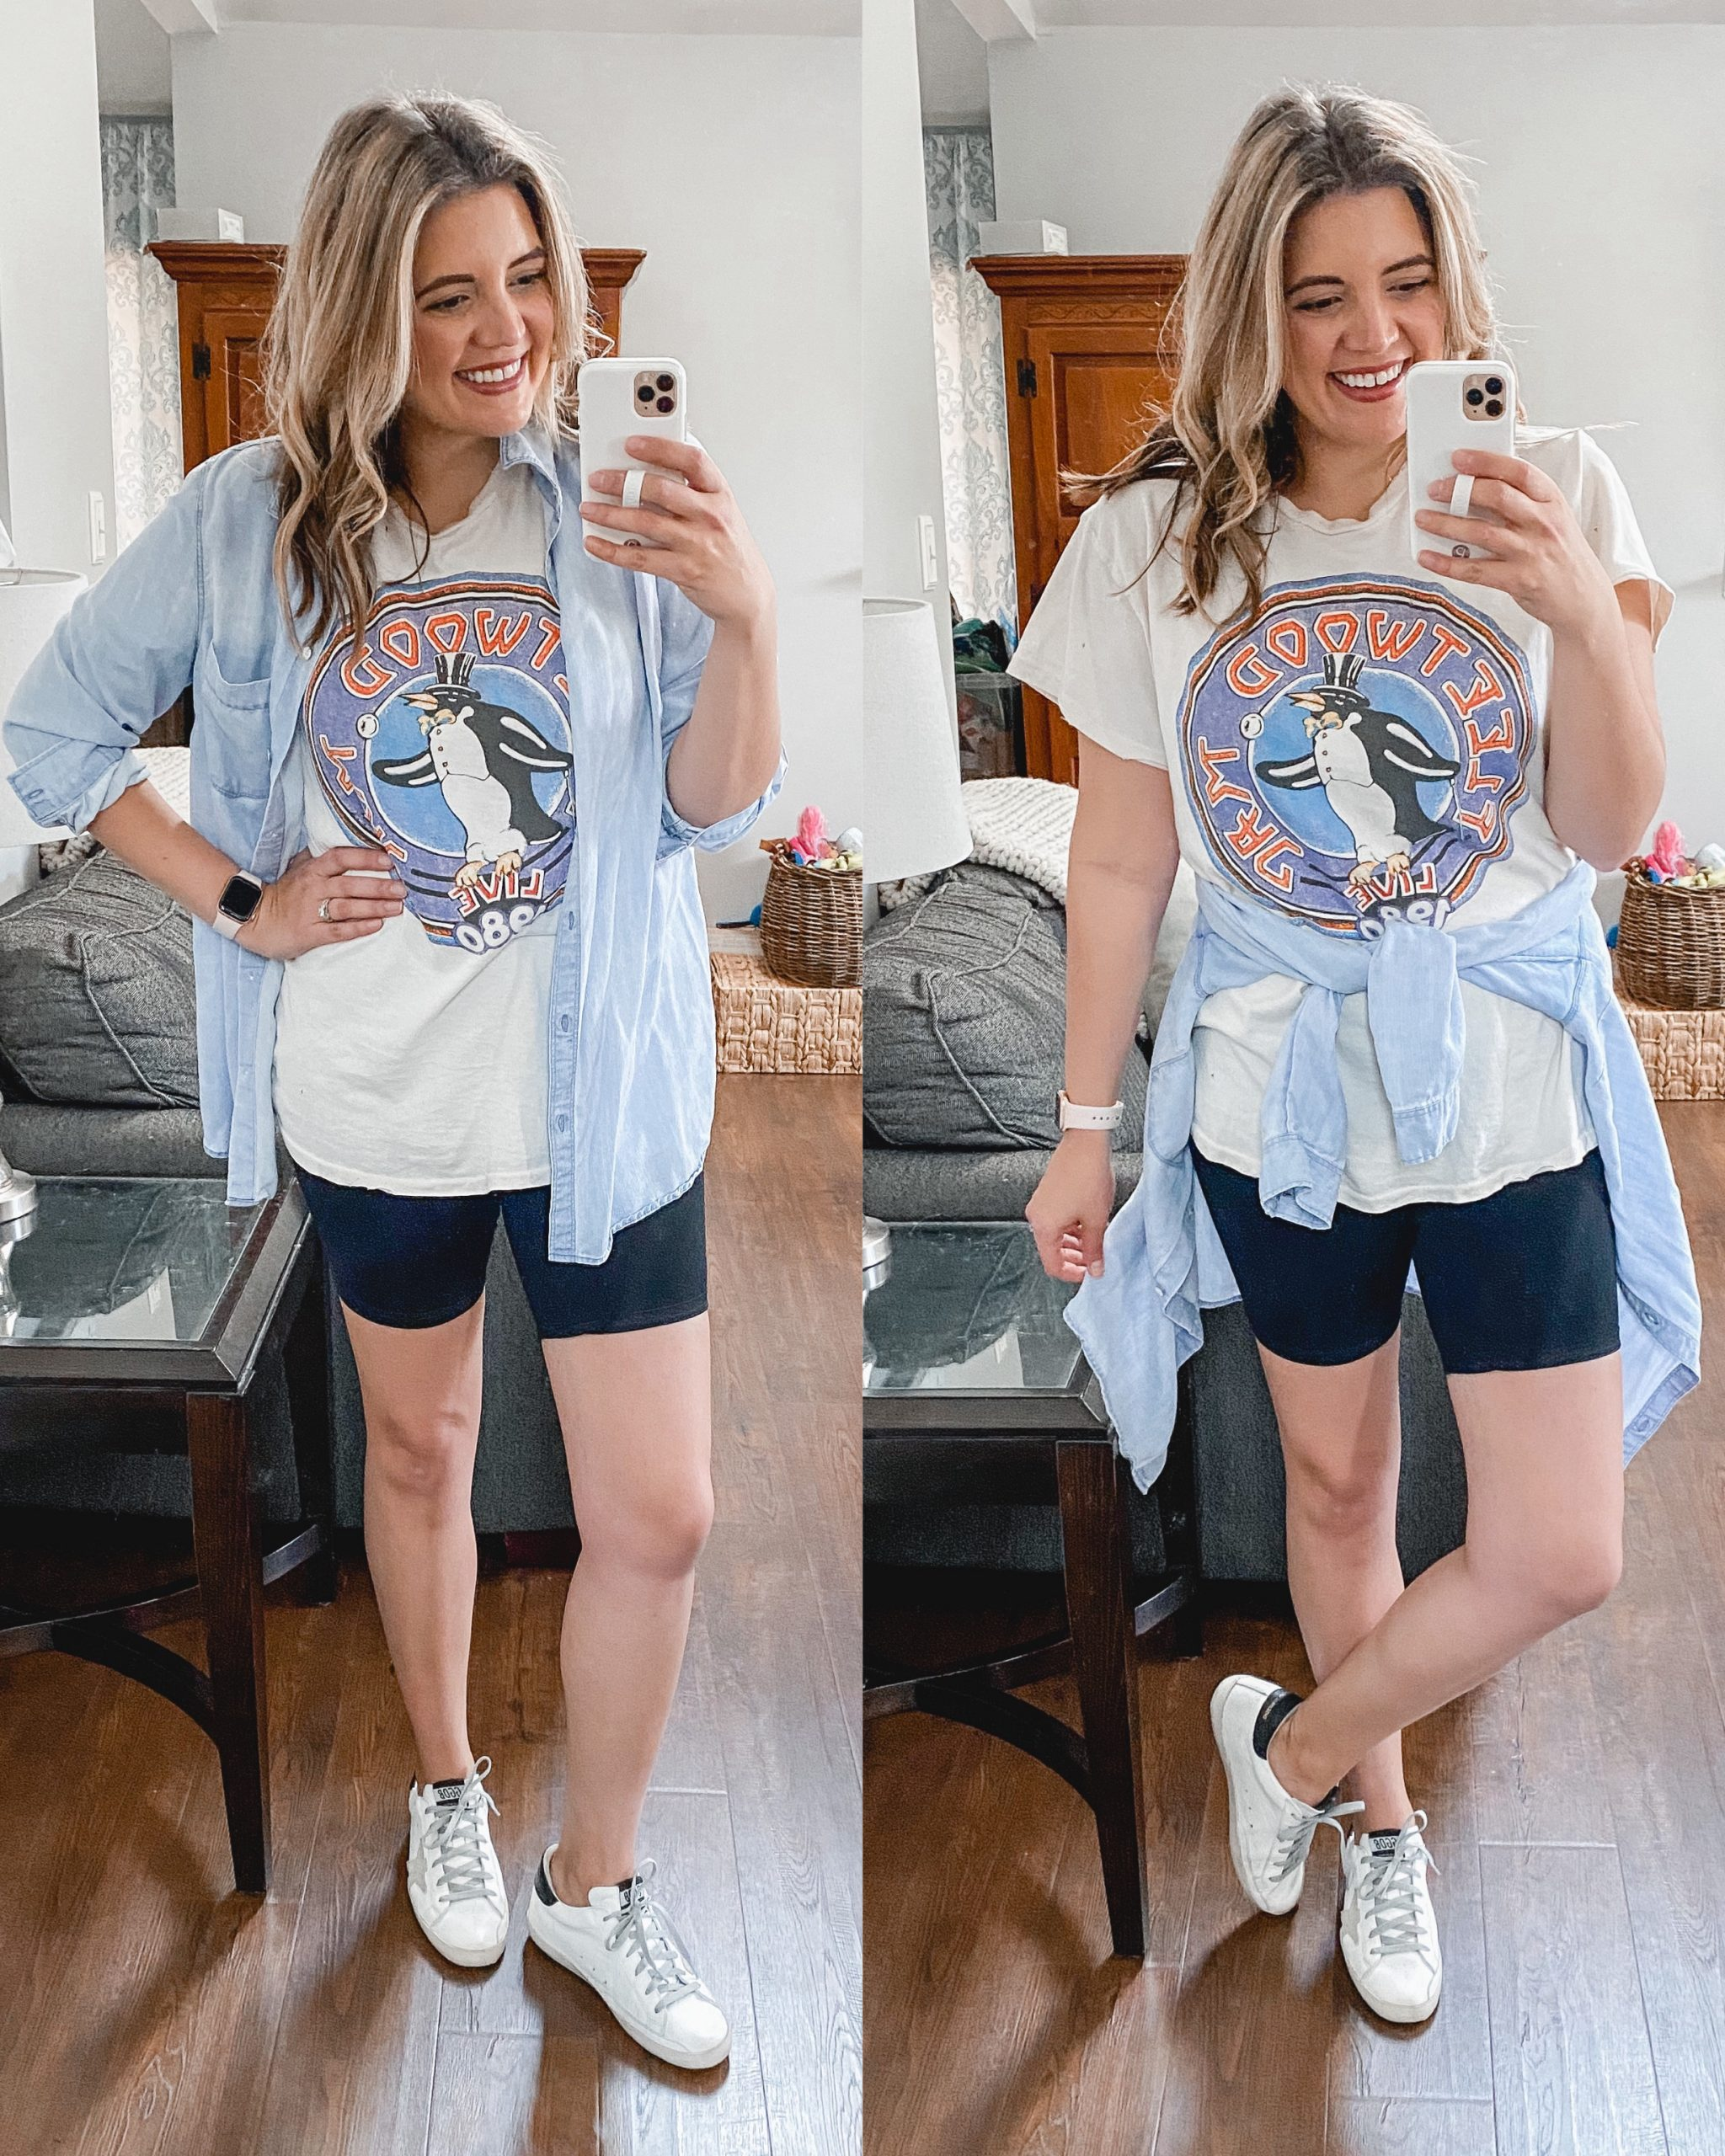 Virginia blogger, Lauren Dix, shares six bike shorts outfits for spring!